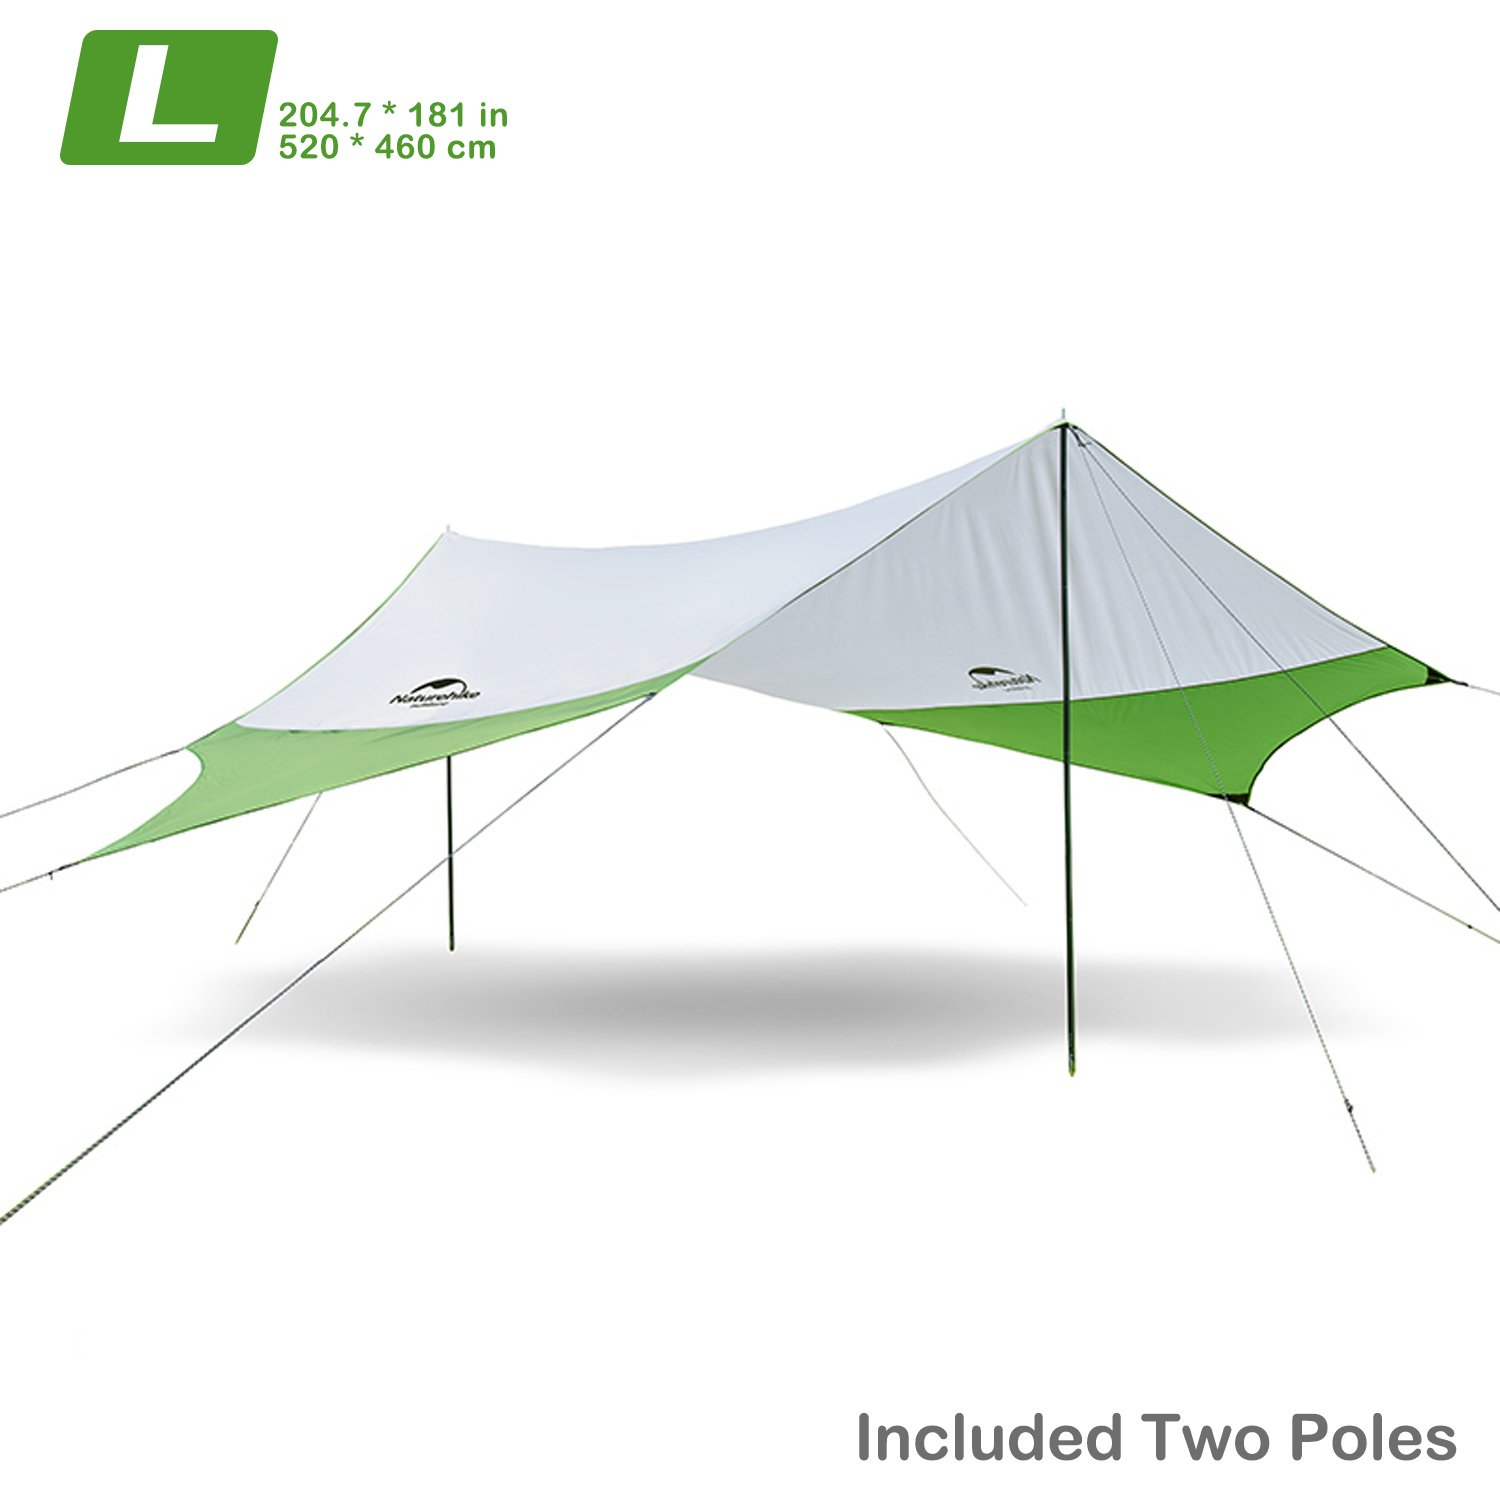 Naturehike Lightweight Camping Tarp Shelter Beach Tent Sun Shade Awning Canopy with Tarp Poles, Portable Waterproof Sun-Proof 204.7x181/157.5x137.8 for Hiking Fishing Picnic (Green&Grey-L) by Topnaca